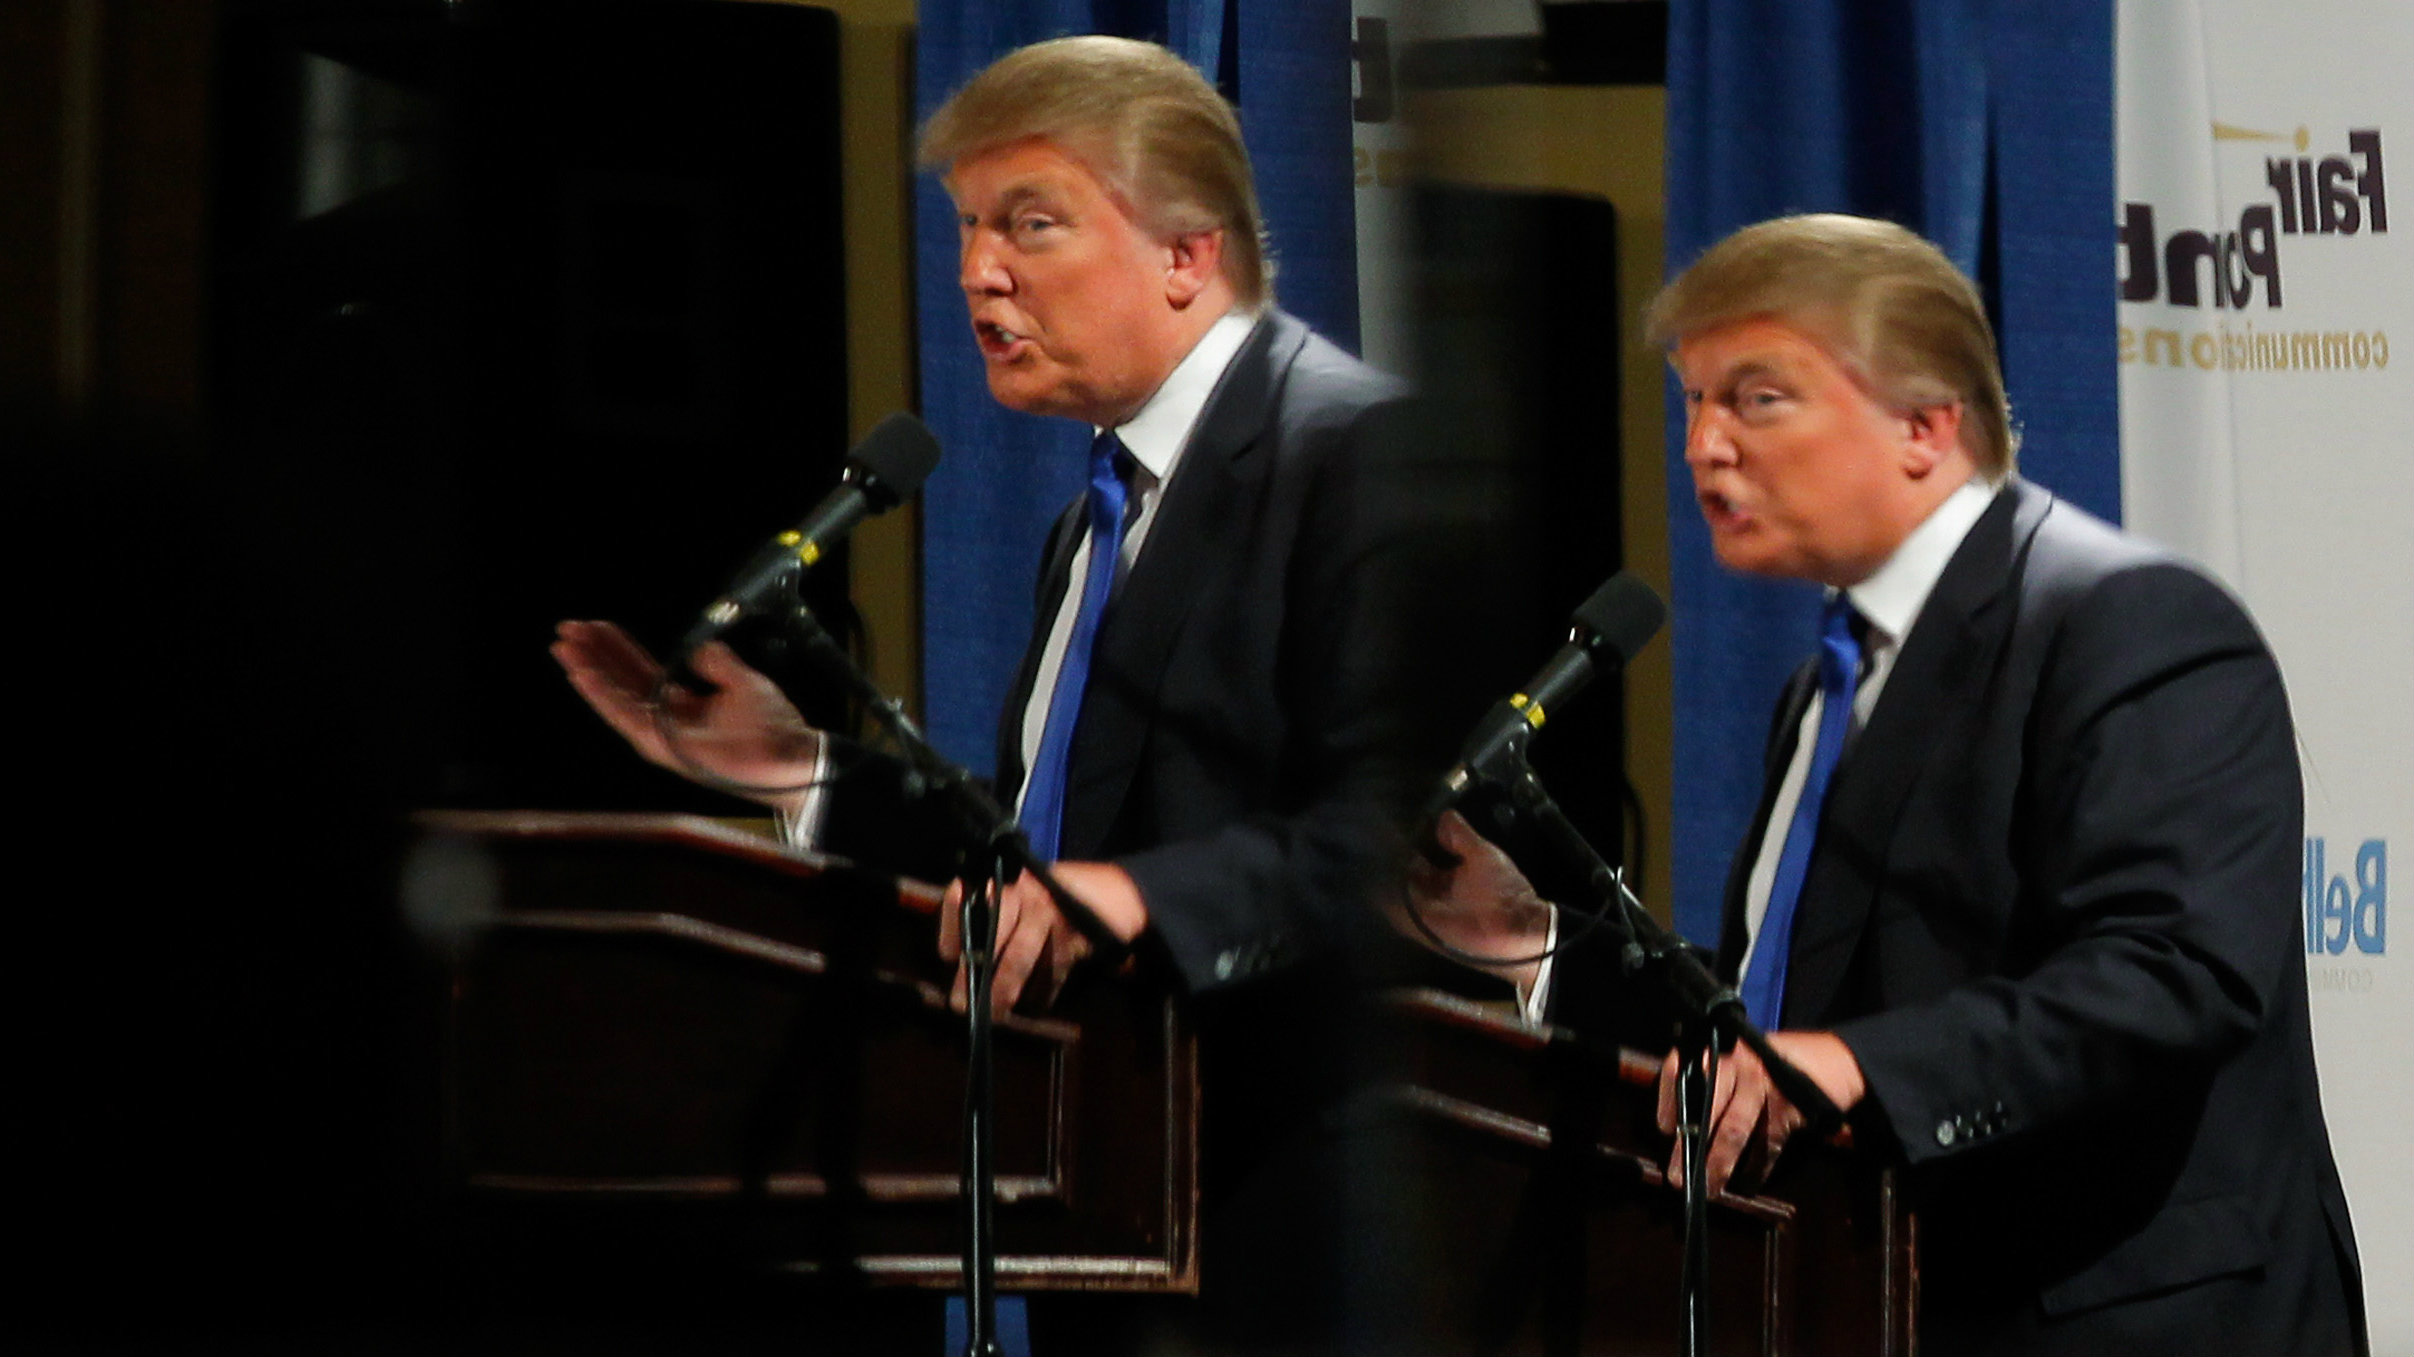 Businessman and possible Republican Presidential candidate Donald Trump is reflected in mirrors while speaking at the Greater Nashua Chamber of Commerce Expo in Nashua, New Hampshire May 11, 2011. REUTERS/Brian Snyder (UNITED STATES - Tags: POLITICS BUSINESS)